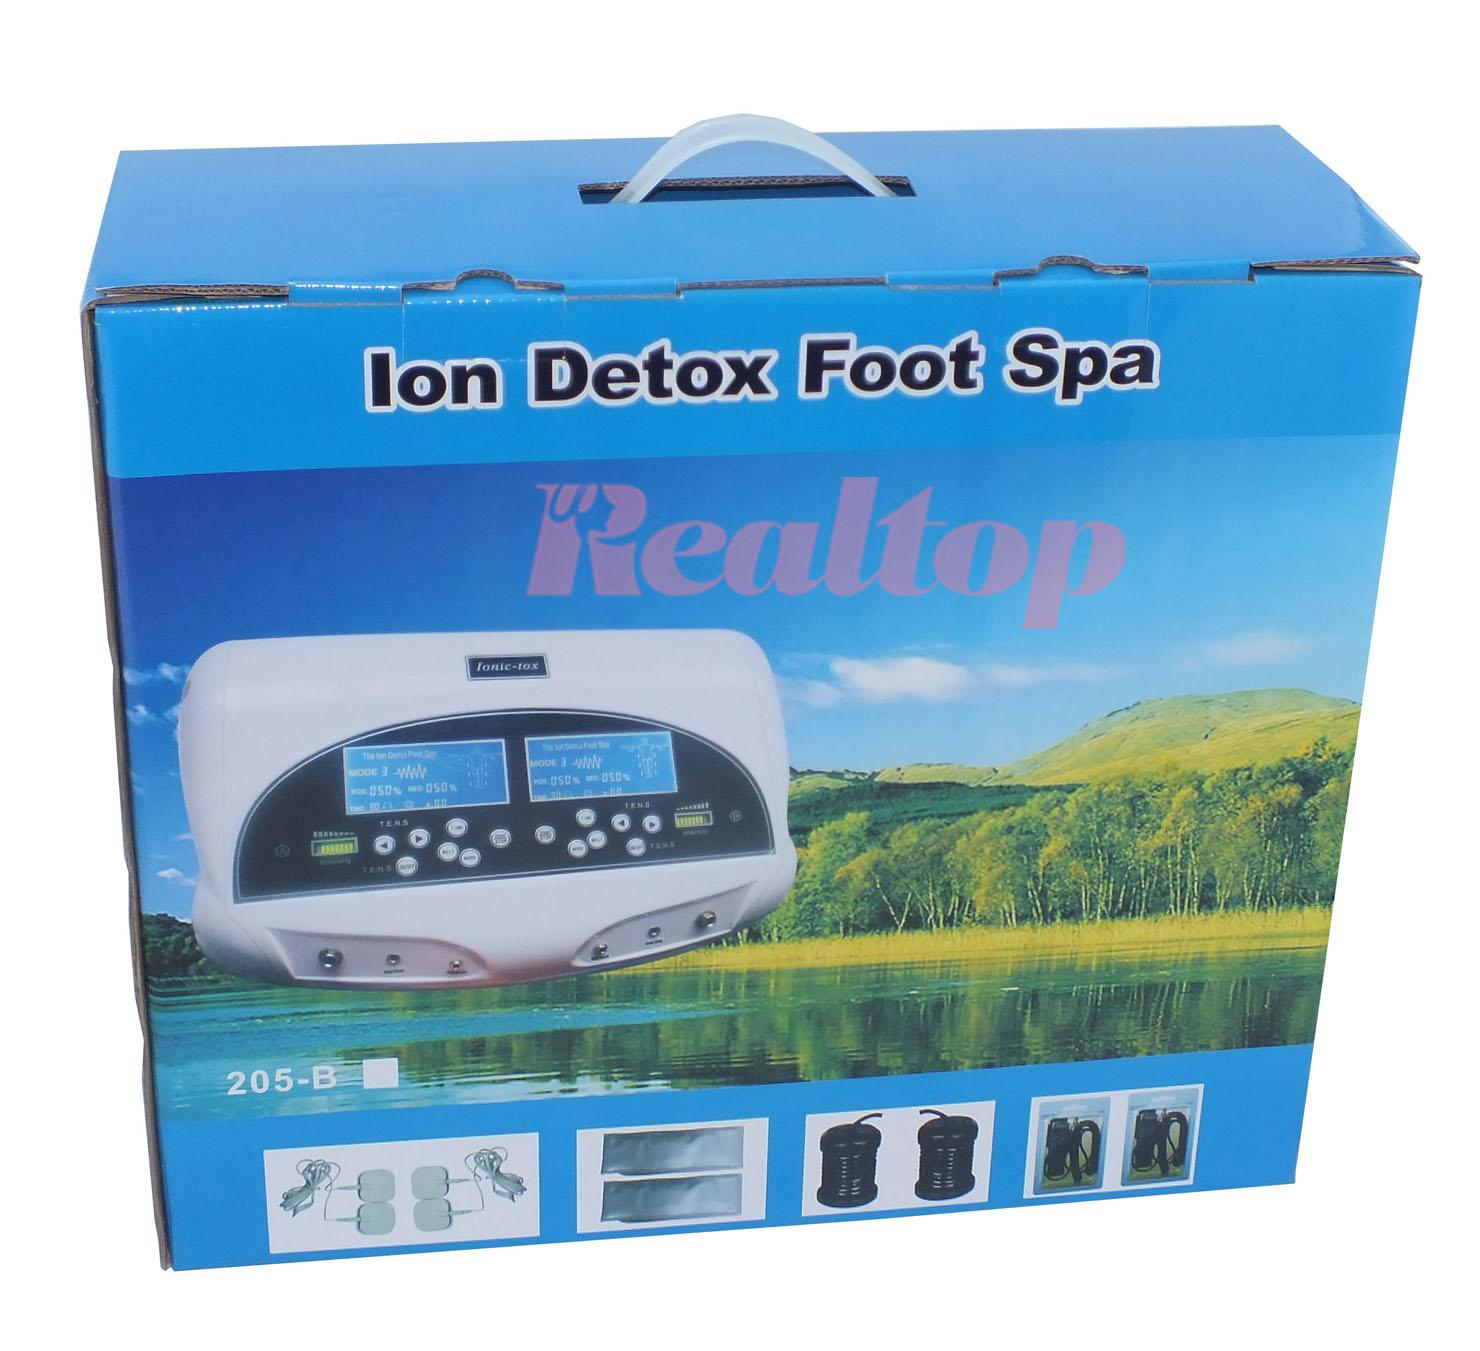 ionic foot bath detox machine reviews